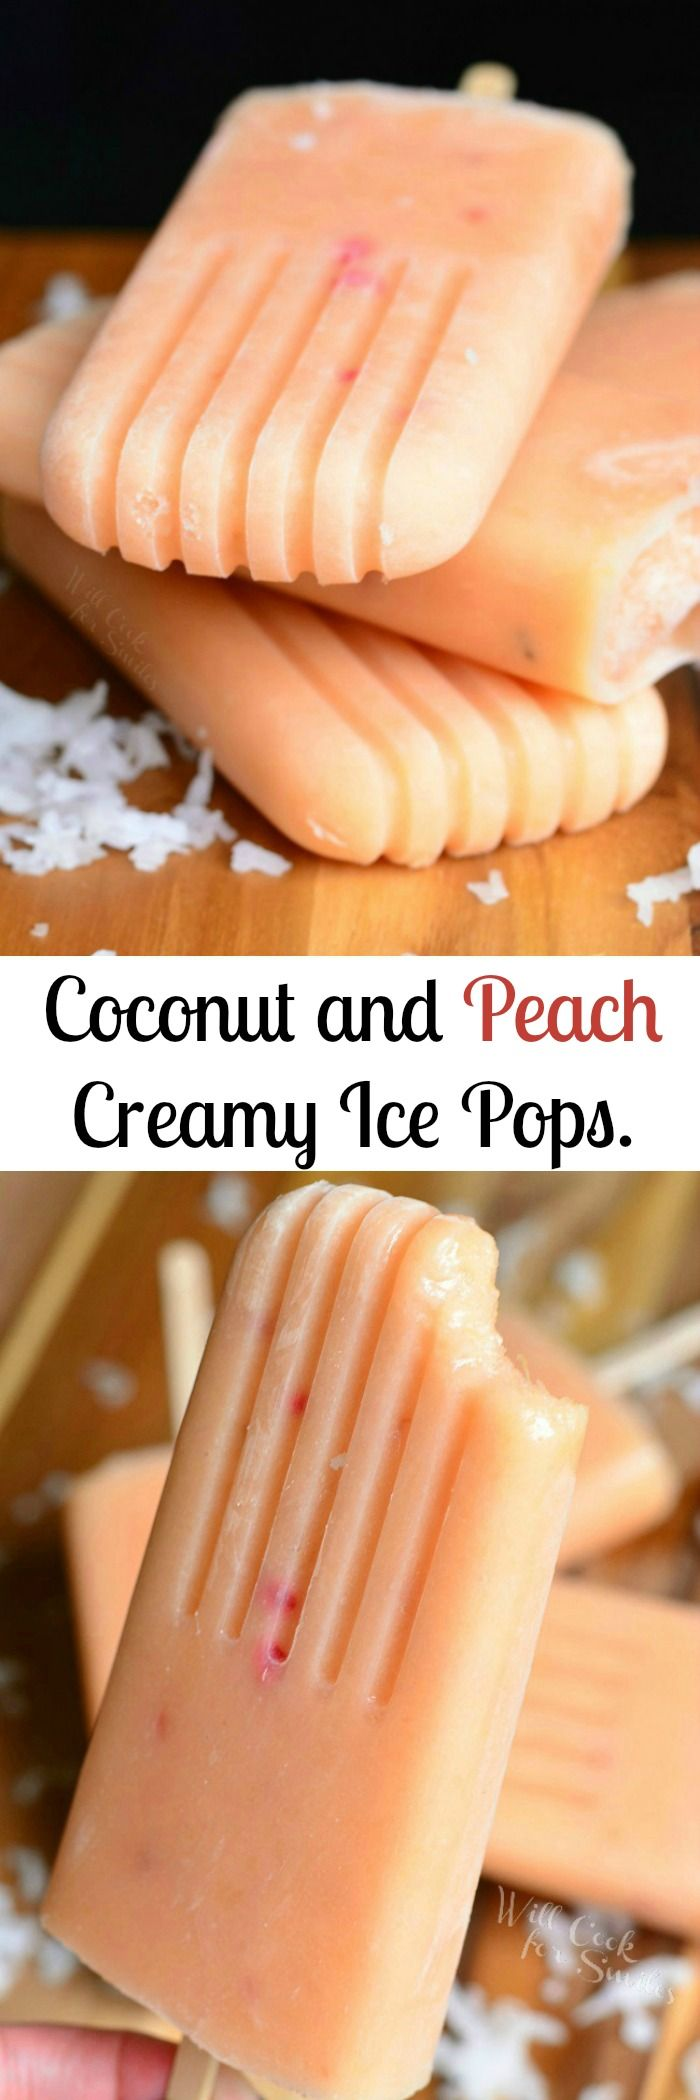 Coconut and Peach Creamy Fruit Ice Pops. Sweet, aromatic, ice pops that are simple to make are packed with peaches, honey, and coconut